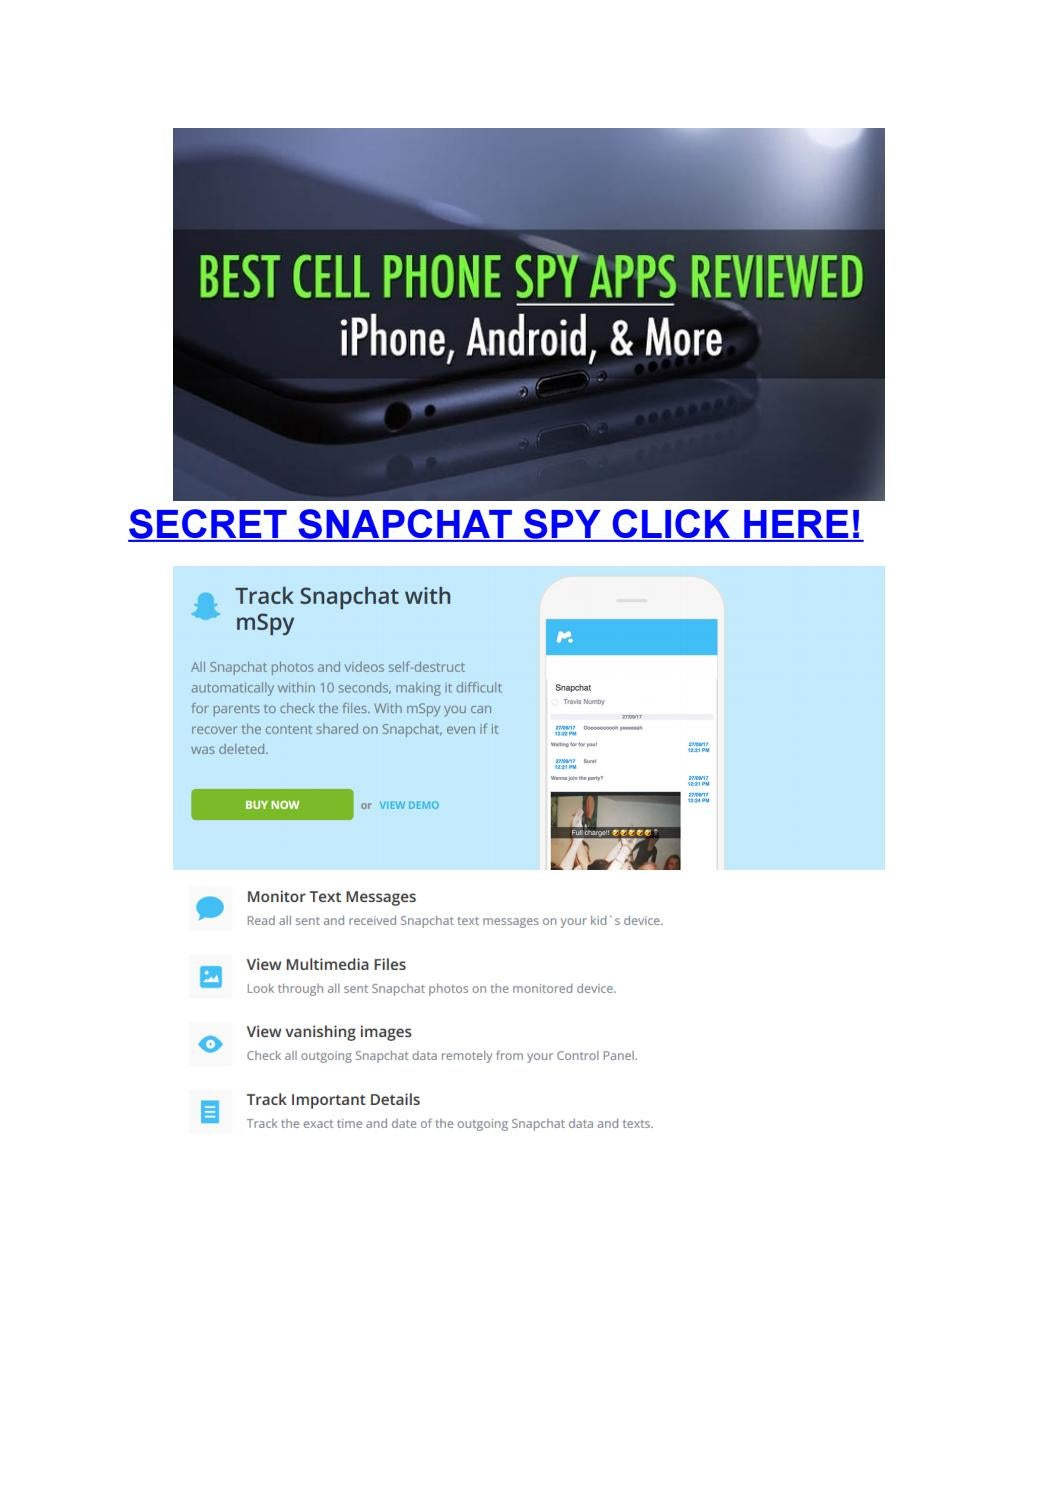 Secret Snapchat Spy by faabler - issuu